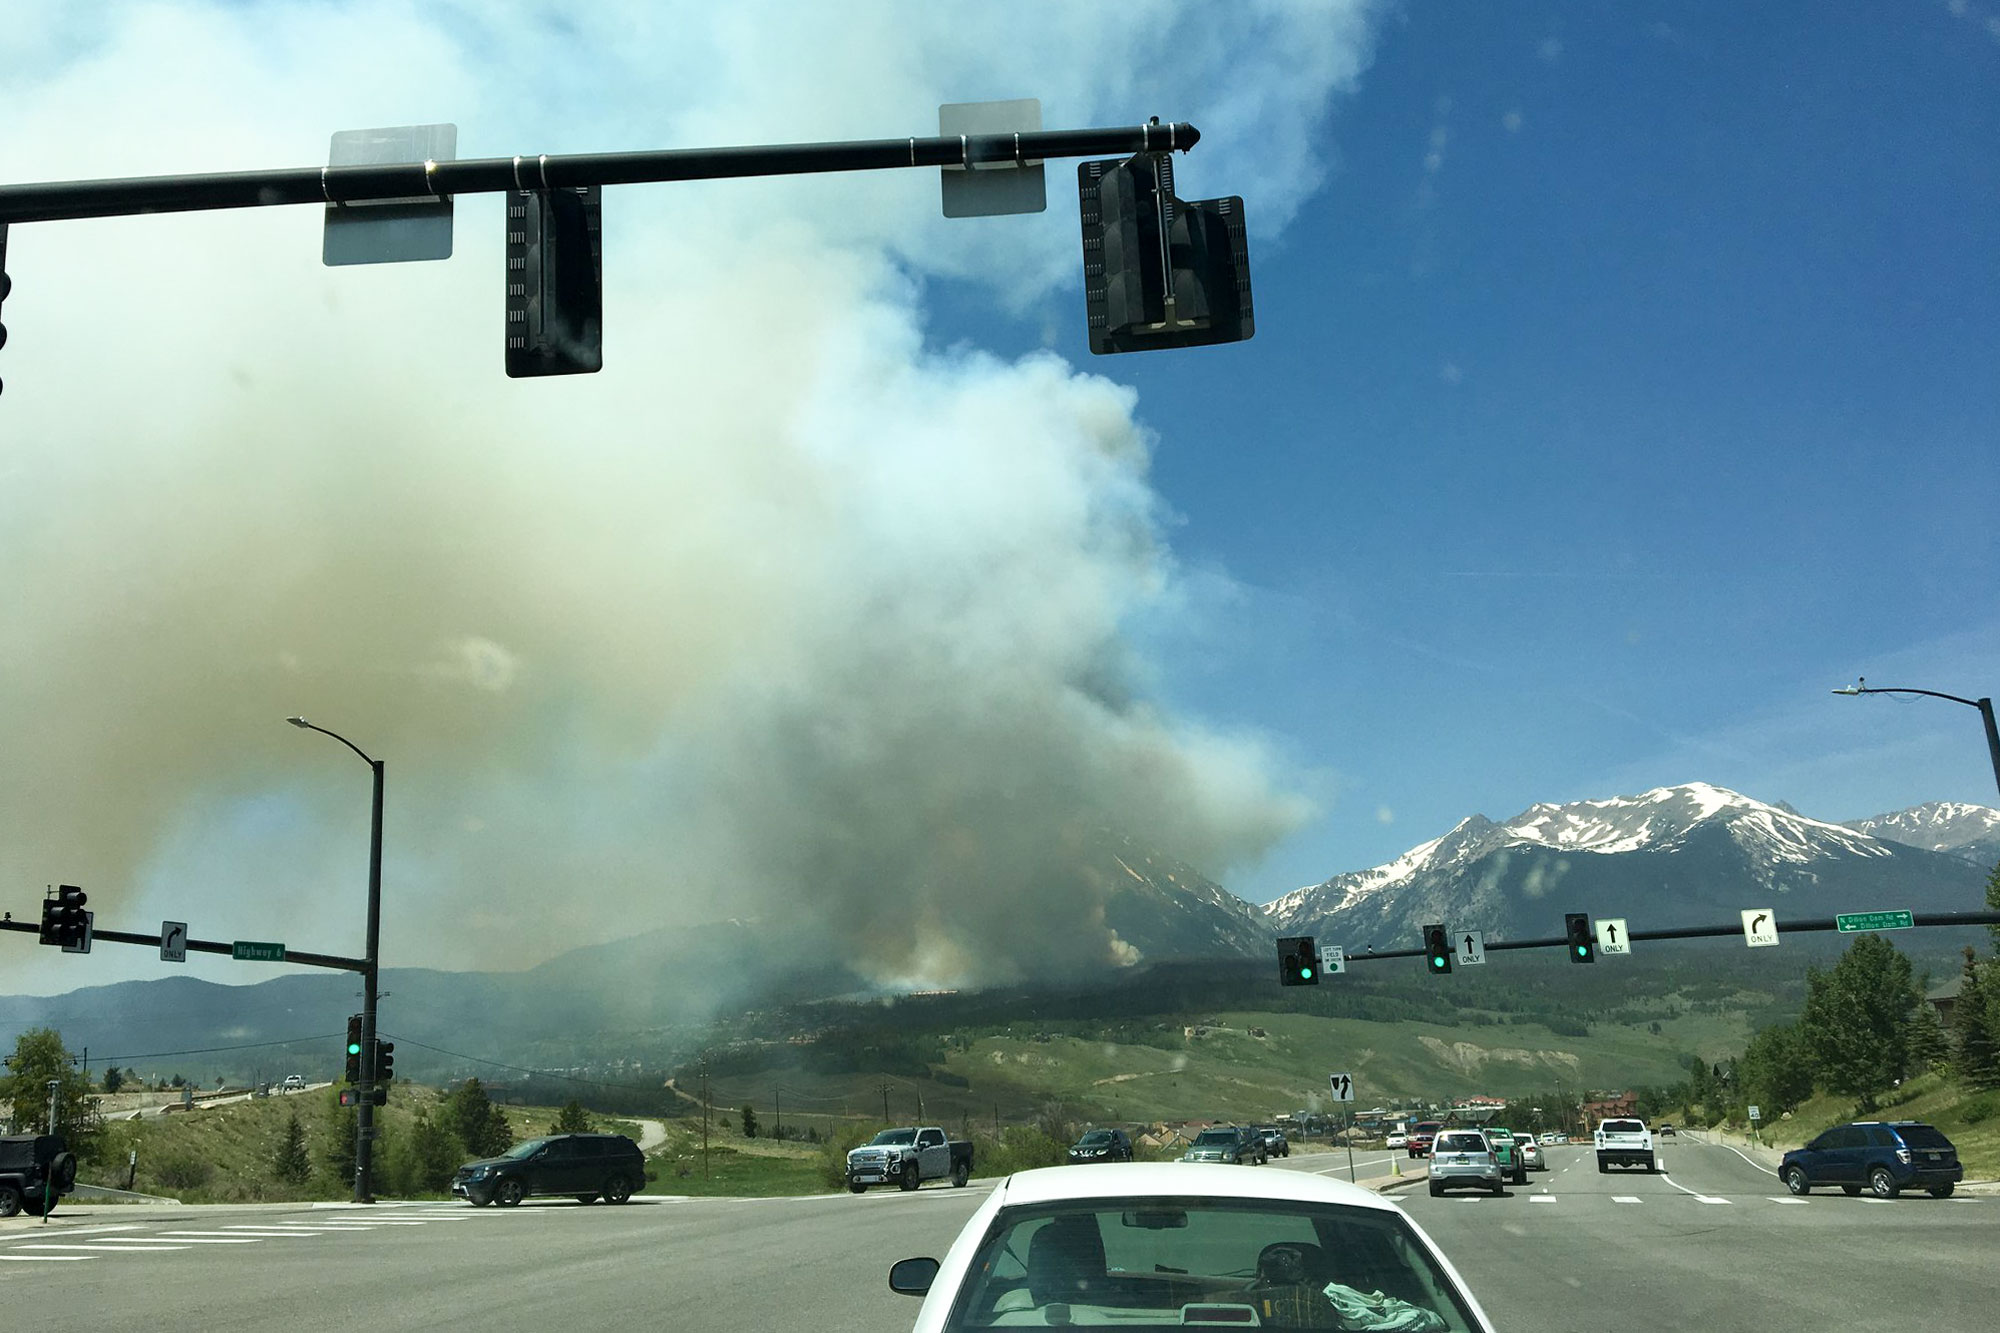 <p>Smoke hanging over the Buffalo Mountain Fire as seen from the intersection of Highway 6 and Dillon Dam Road, June 12, 2018.</p>